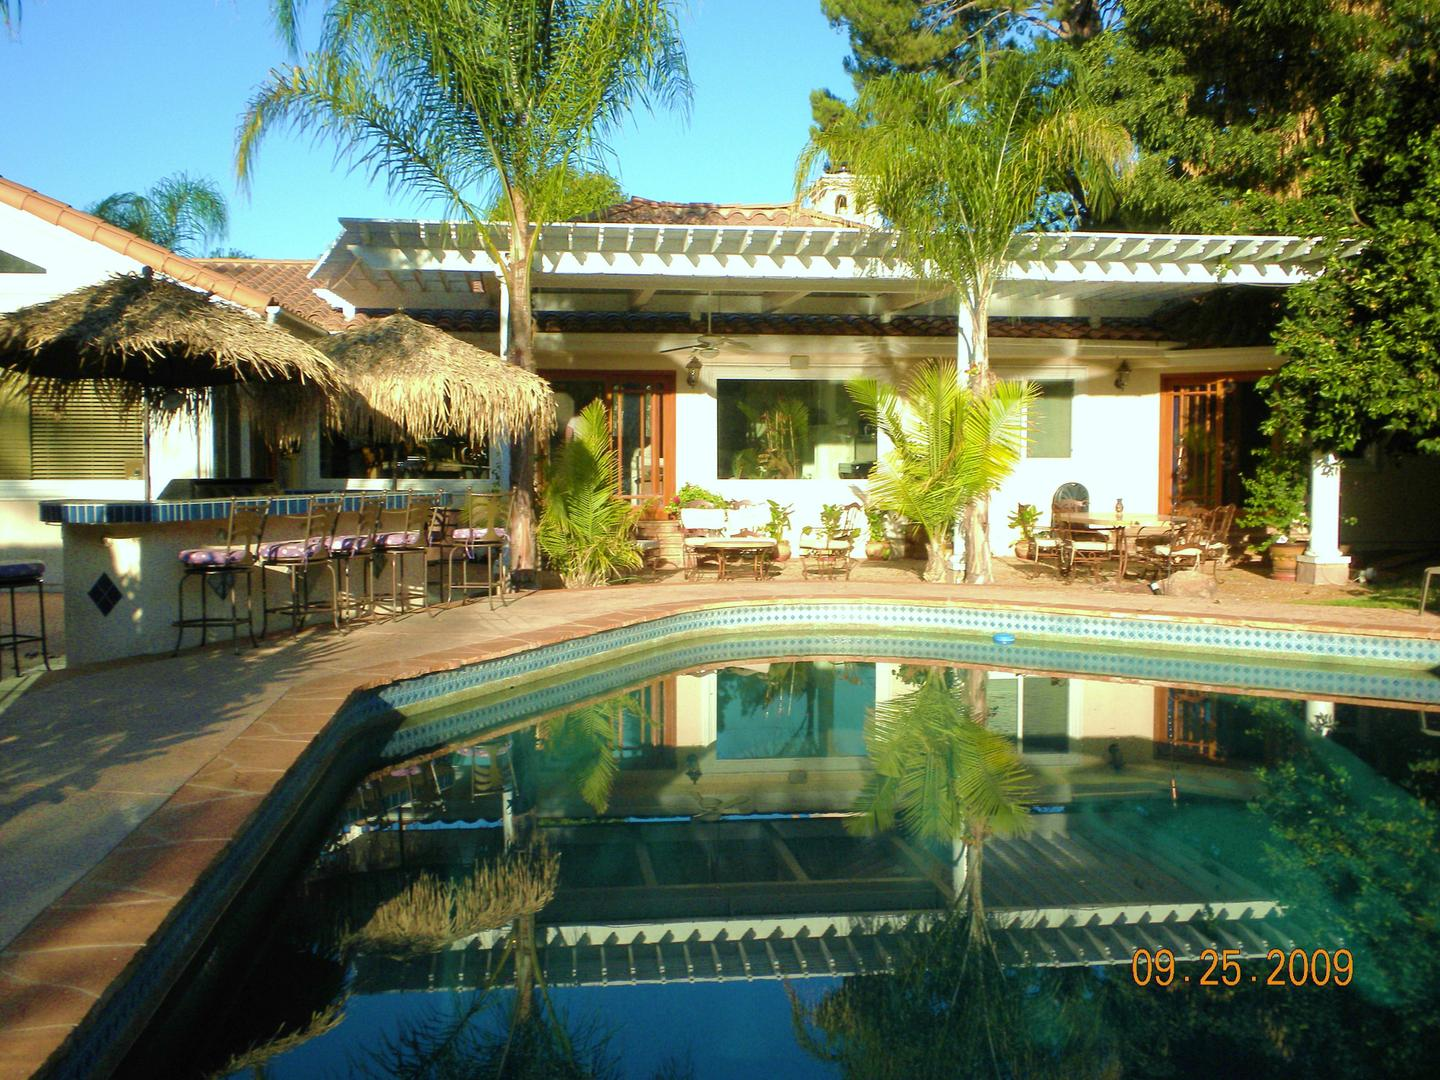 space at Tropical Garden/Pool/Home for Film/Event